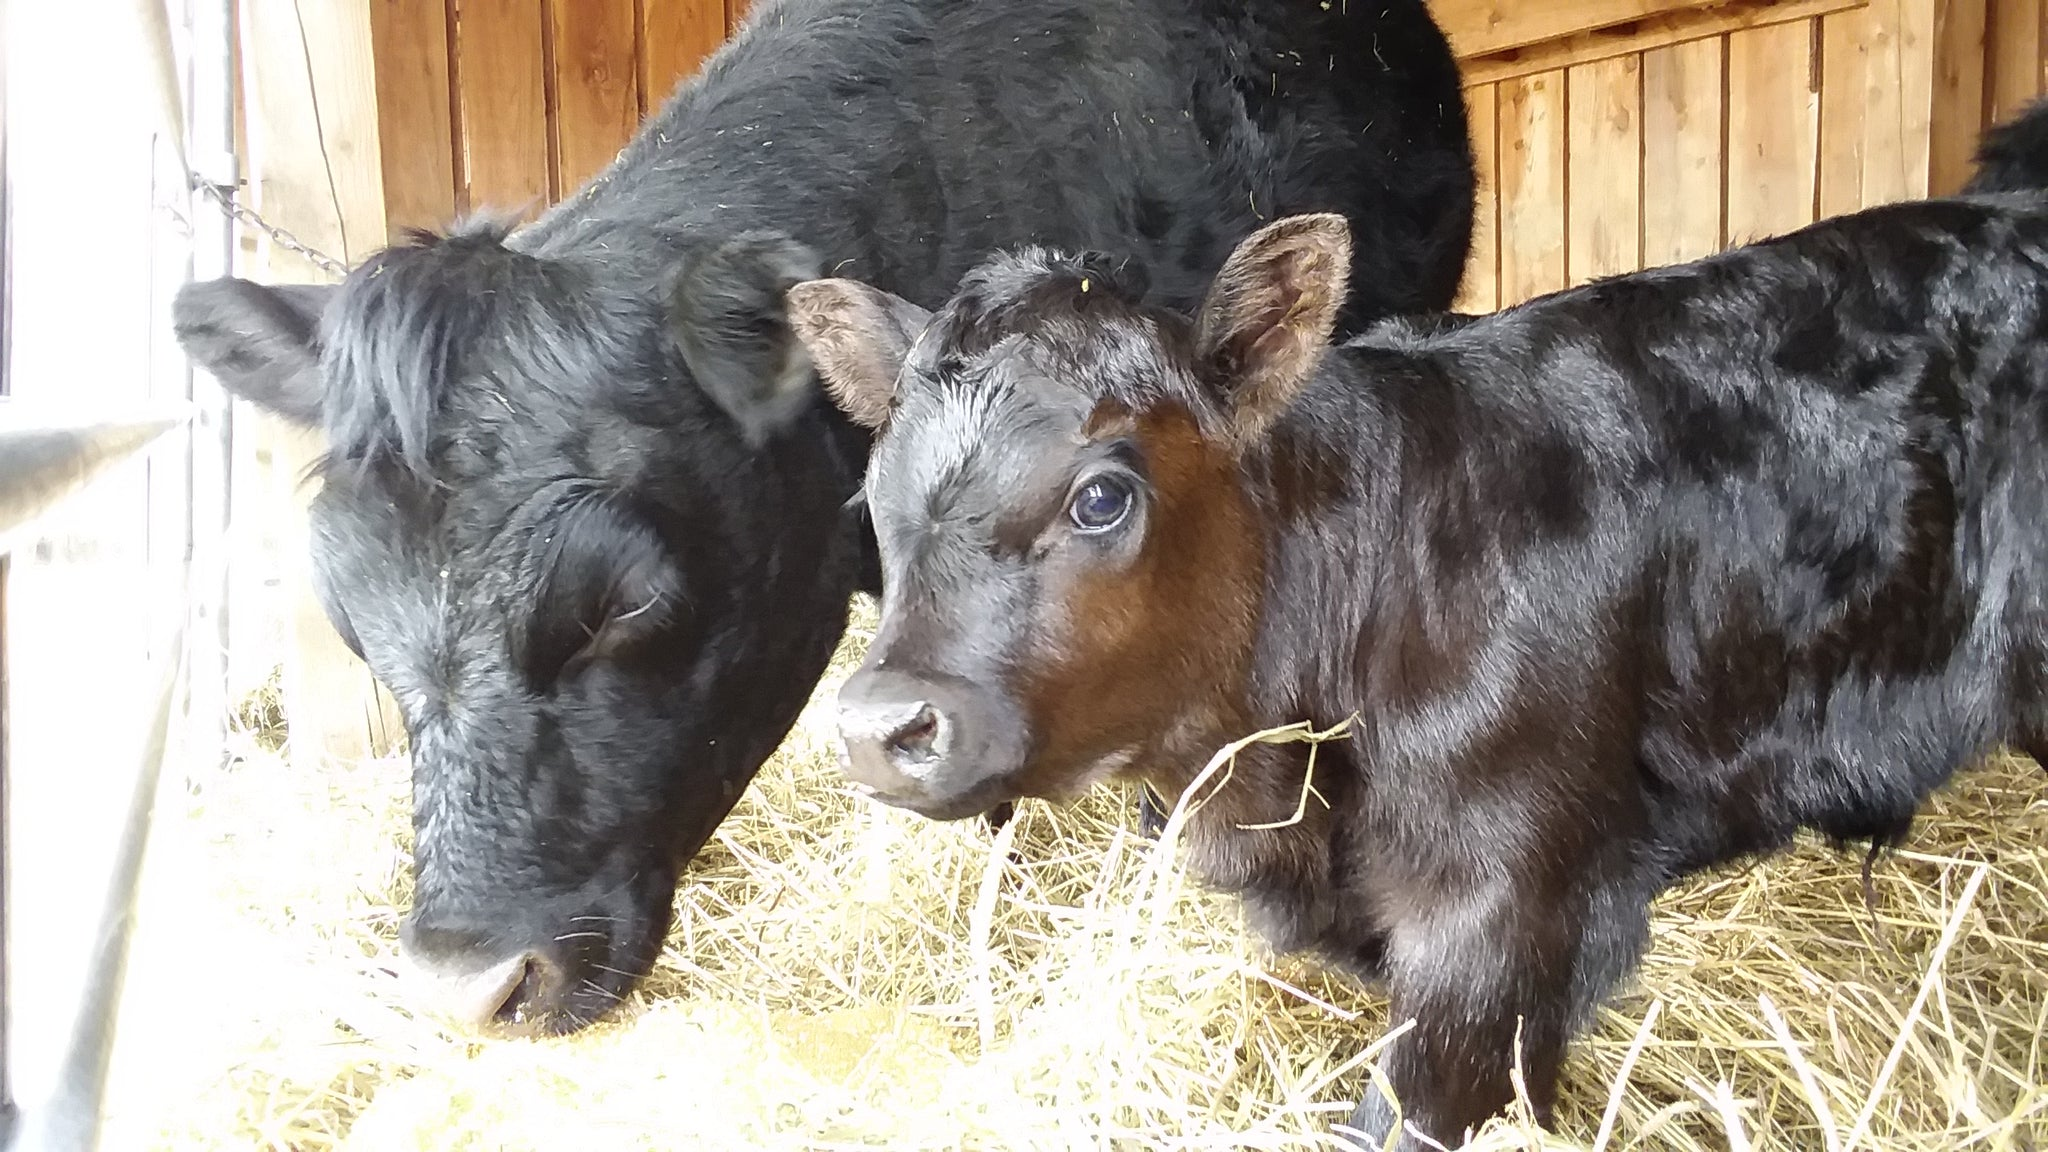 Baby calf Dotti hogs the maternity ward